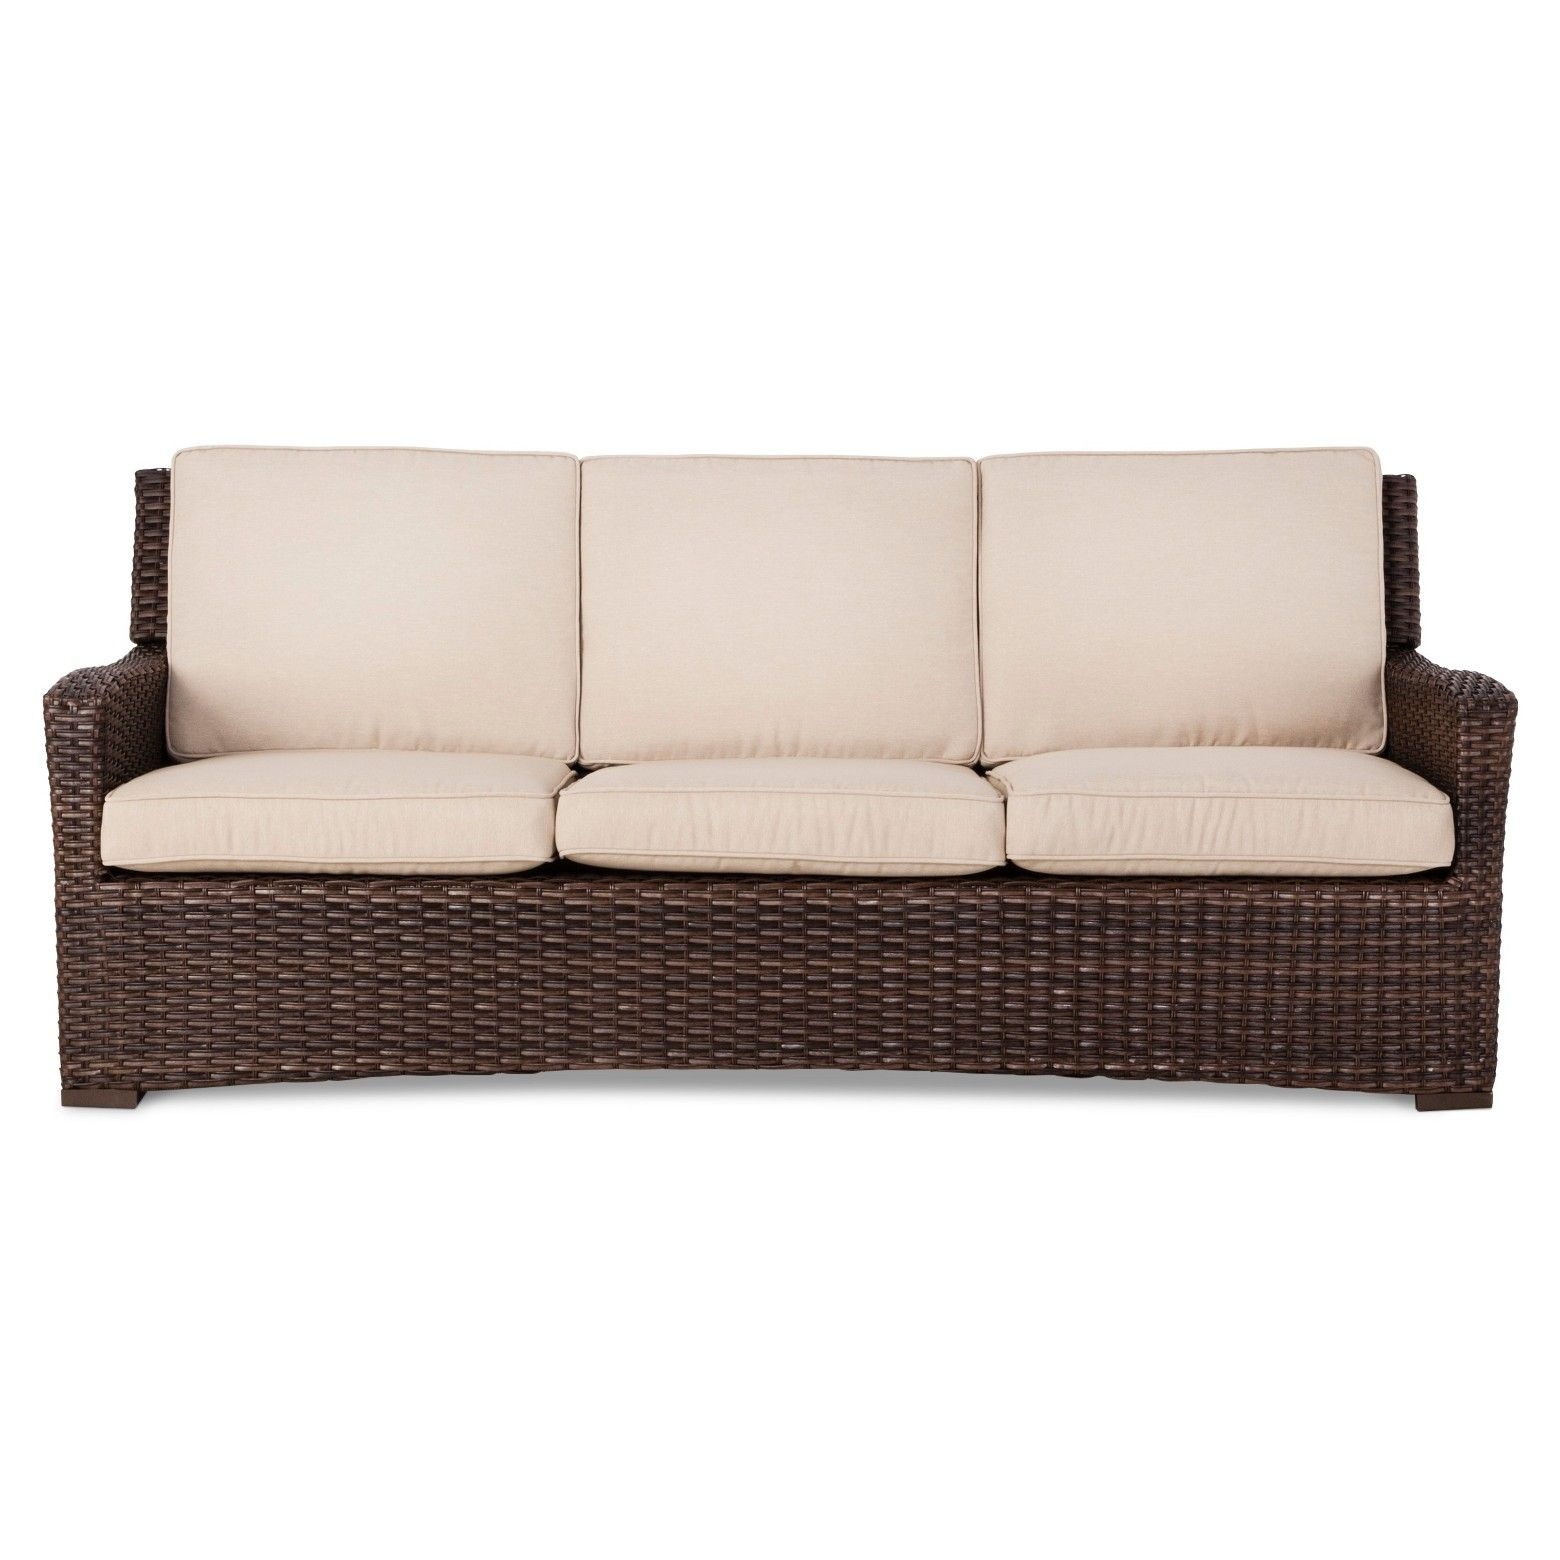 Halsted Wicker Patio Sofa With Cushions Threshold Patio Sofa